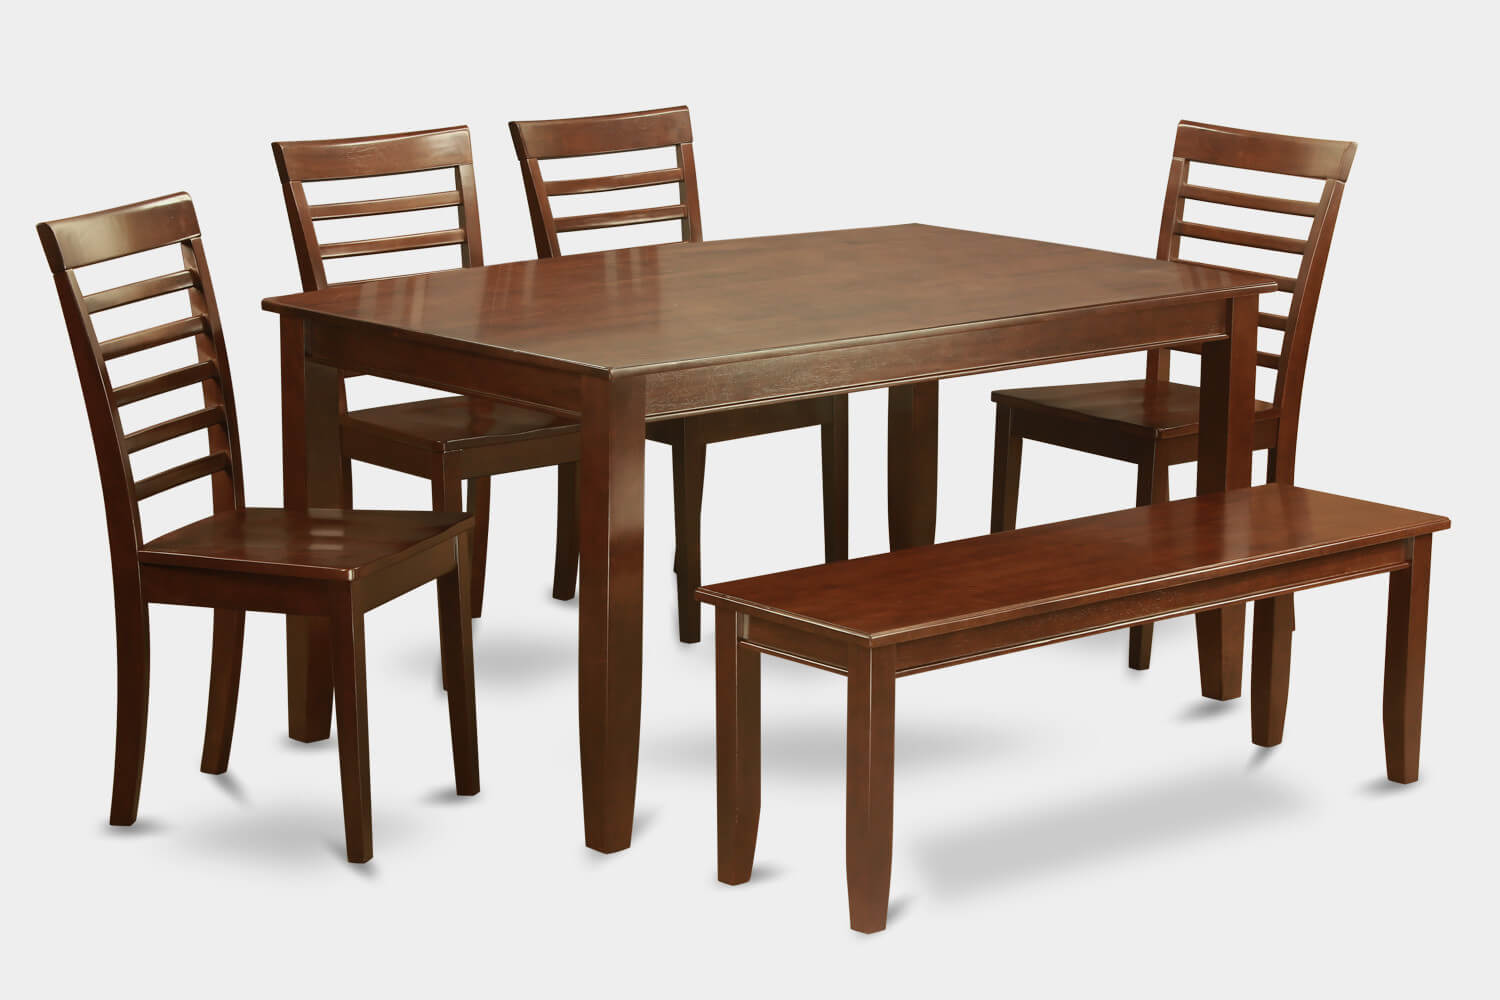 Here's another solid Asian wood dining set with bench in a traditional style. It's a simple design with soft brown finish that would work well in many dining spaces being fairly conservative and traditional in design and color.